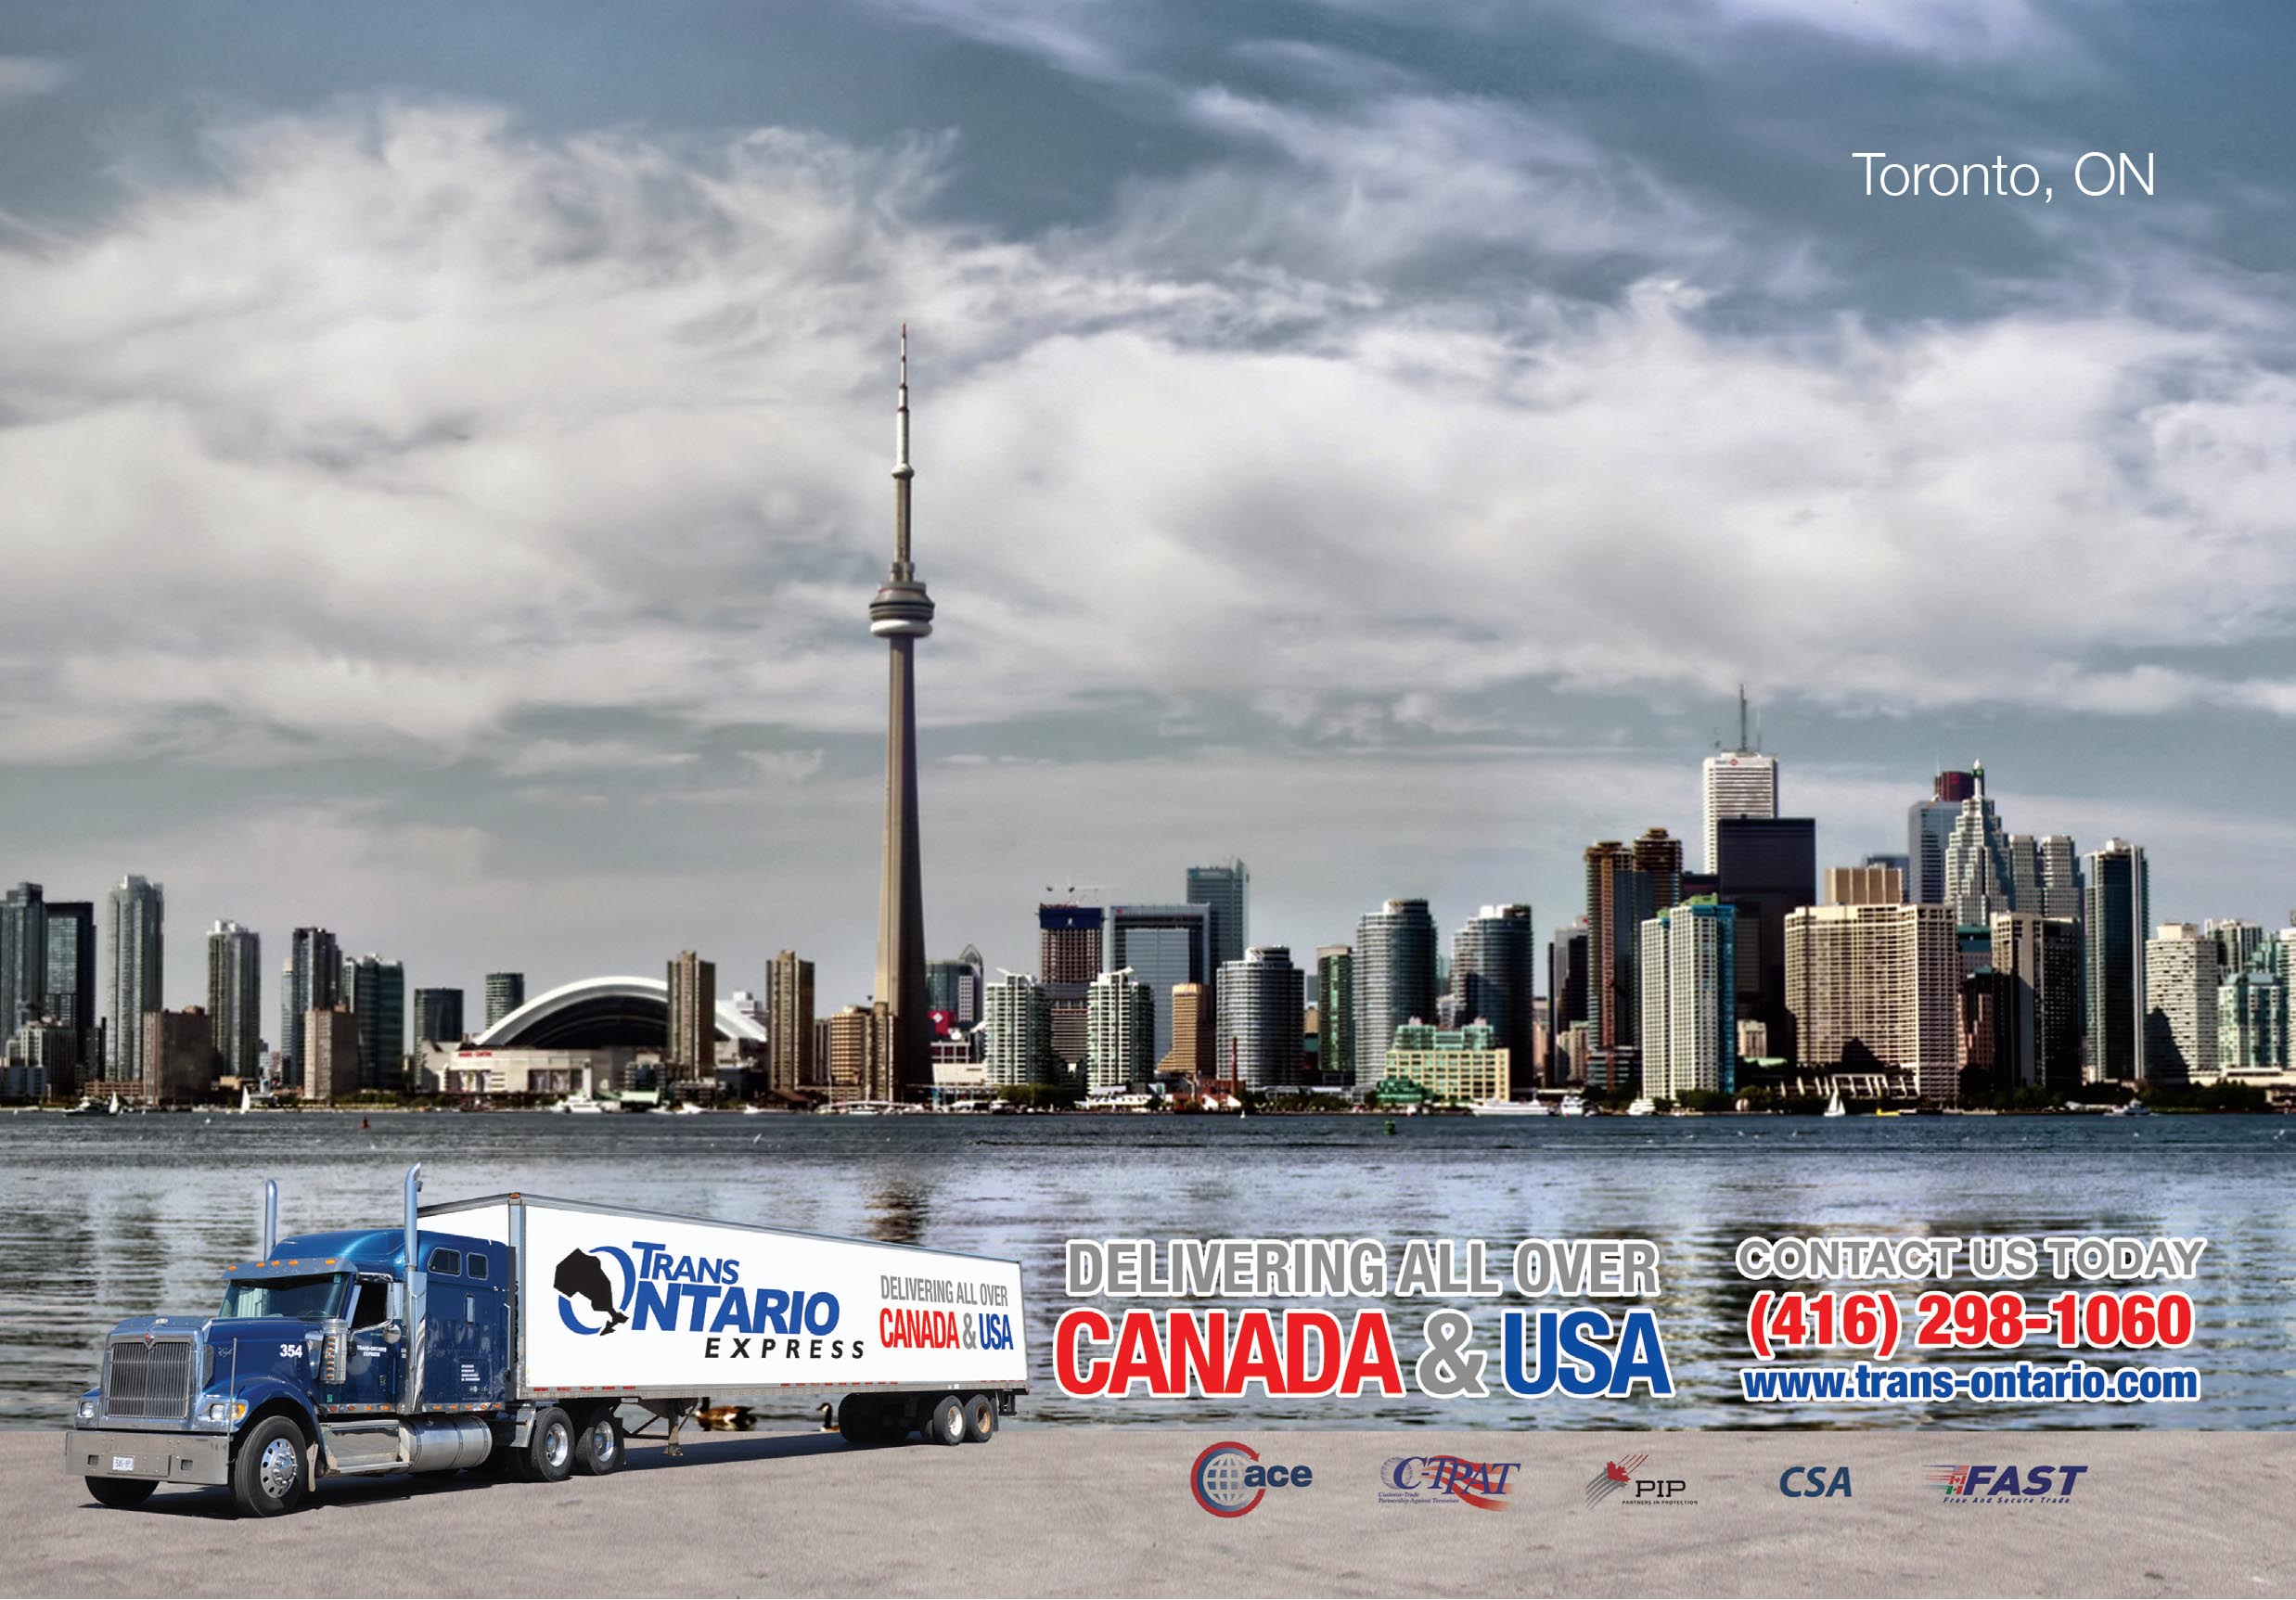 Toronto courier trucking rush sameday freight shipping delivery